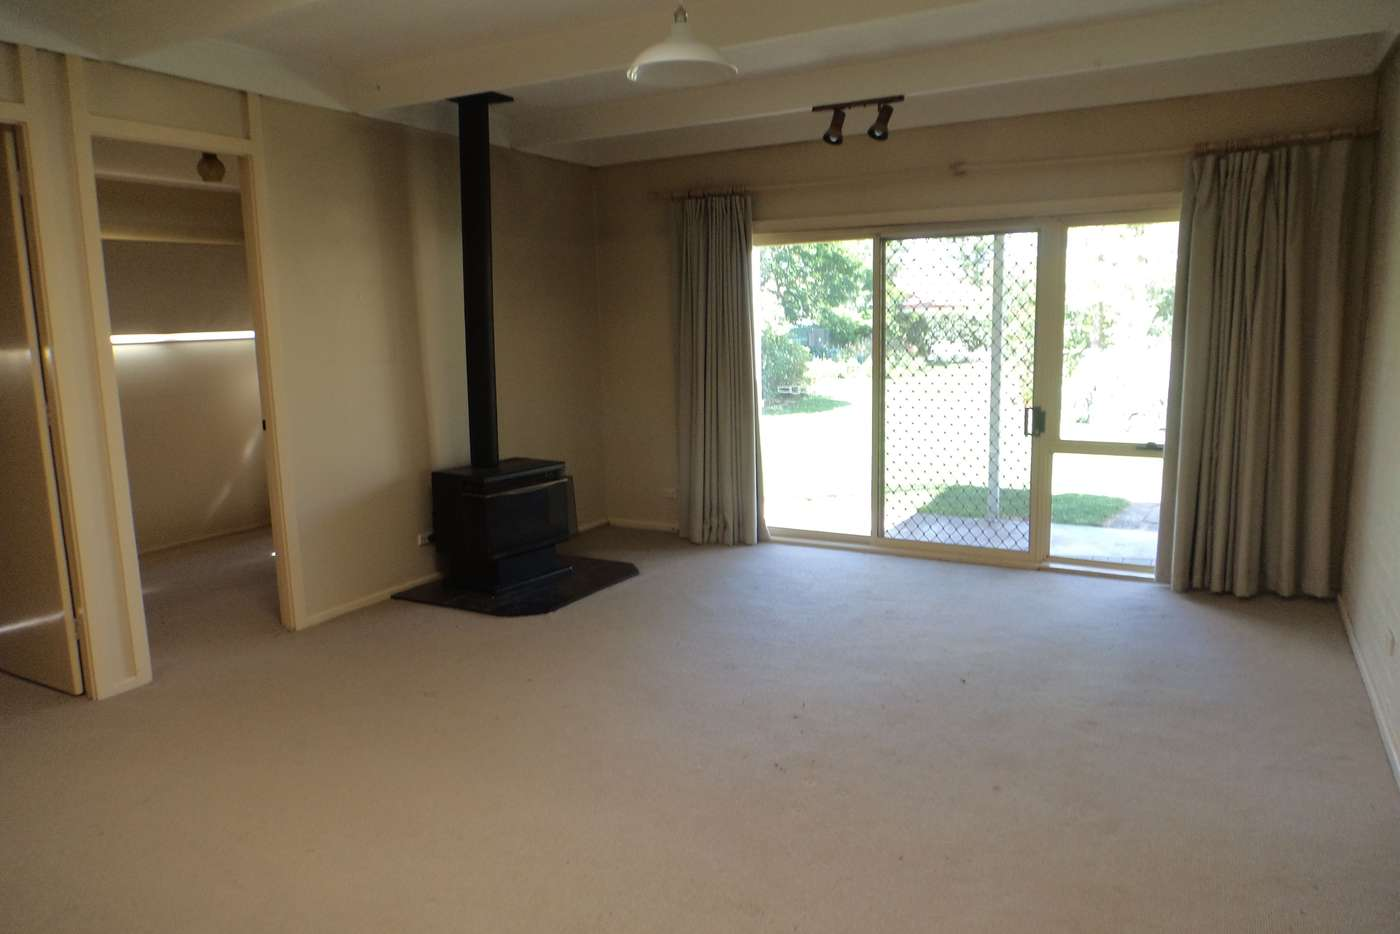 Seventh view of Homely house listing, 8 Beppo Street, Goulburn NSW 2580